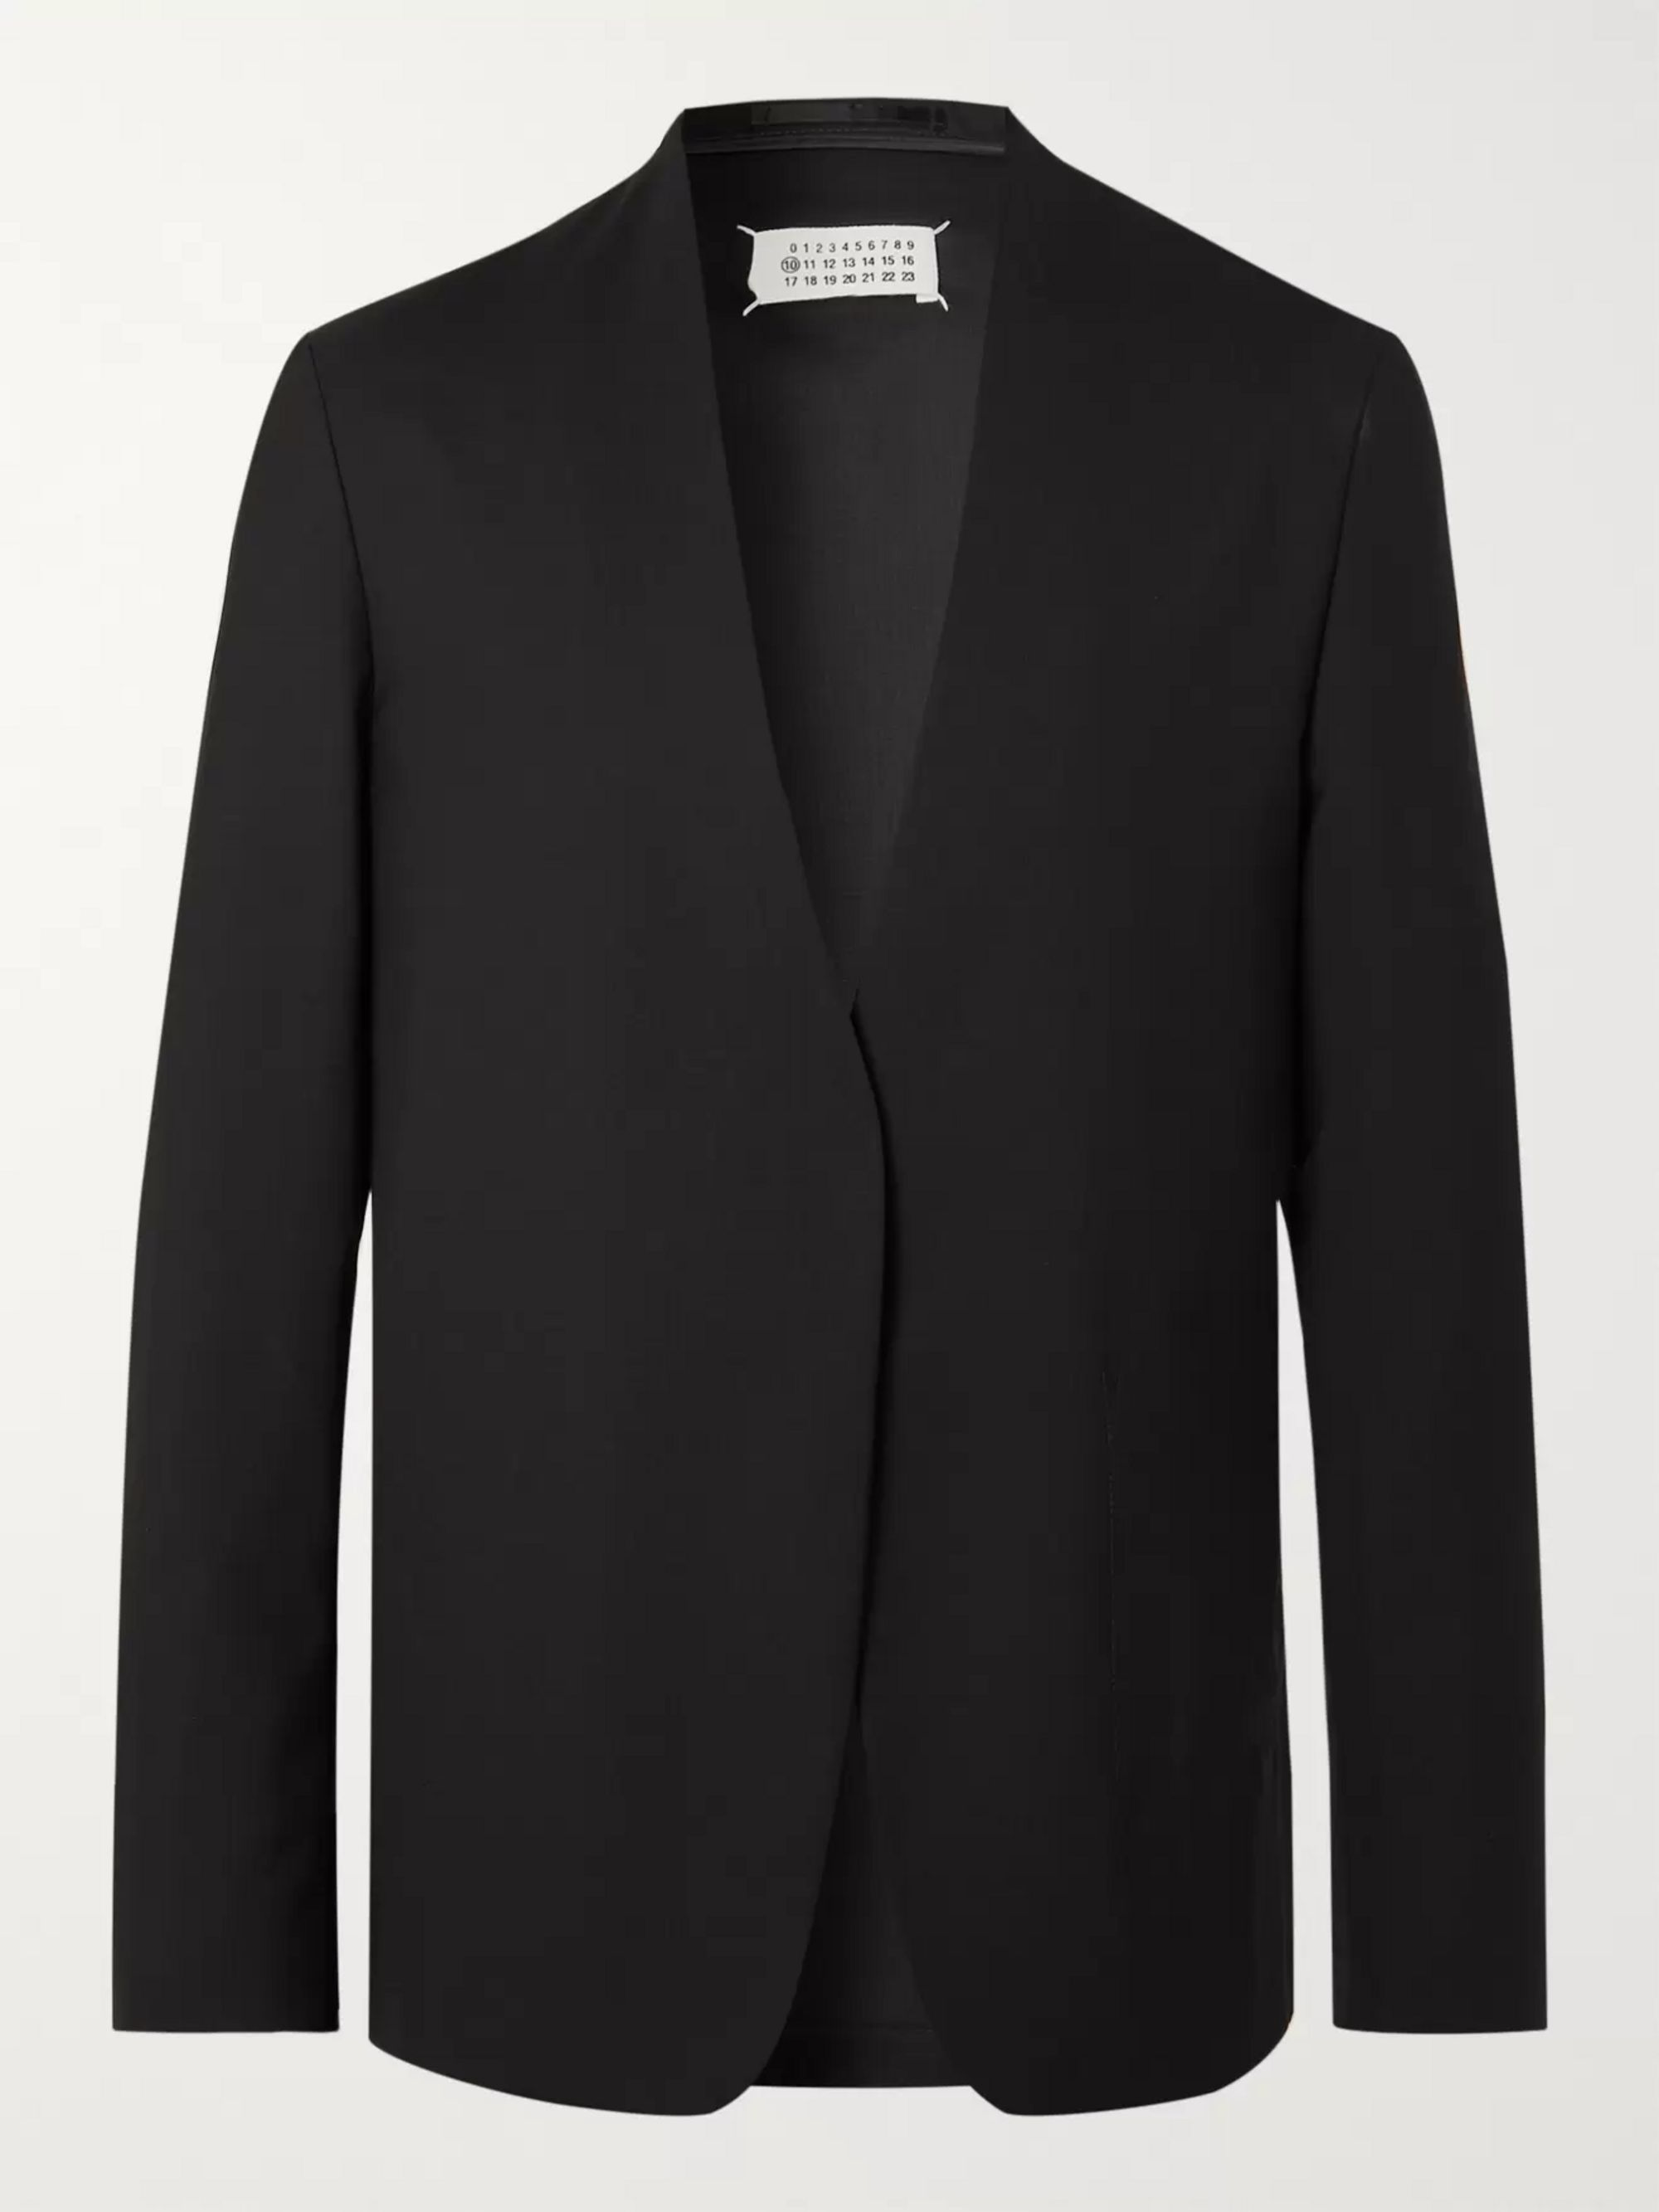 Maison Margiela Black Unstructured Wool Blazer